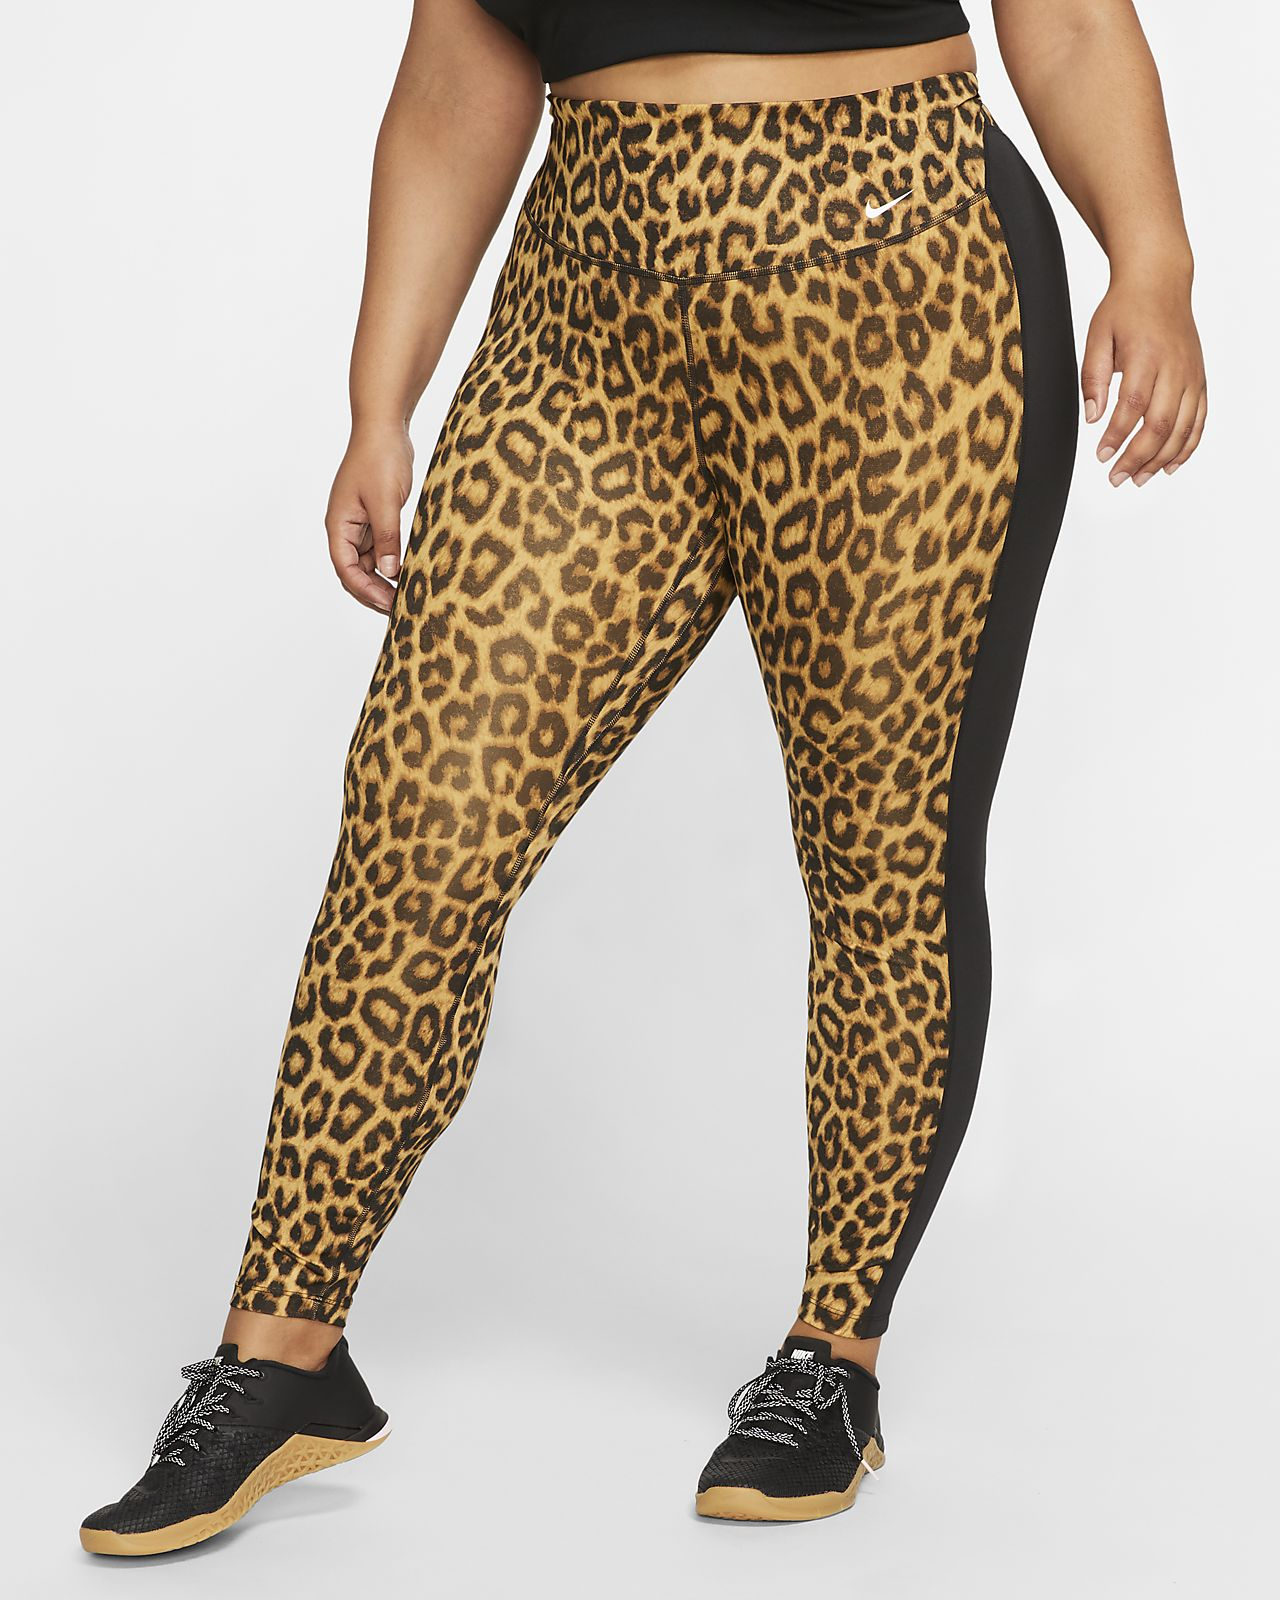 Nike One Mallas de 7/8 con estampado de animal (Talla grande) - Mujer